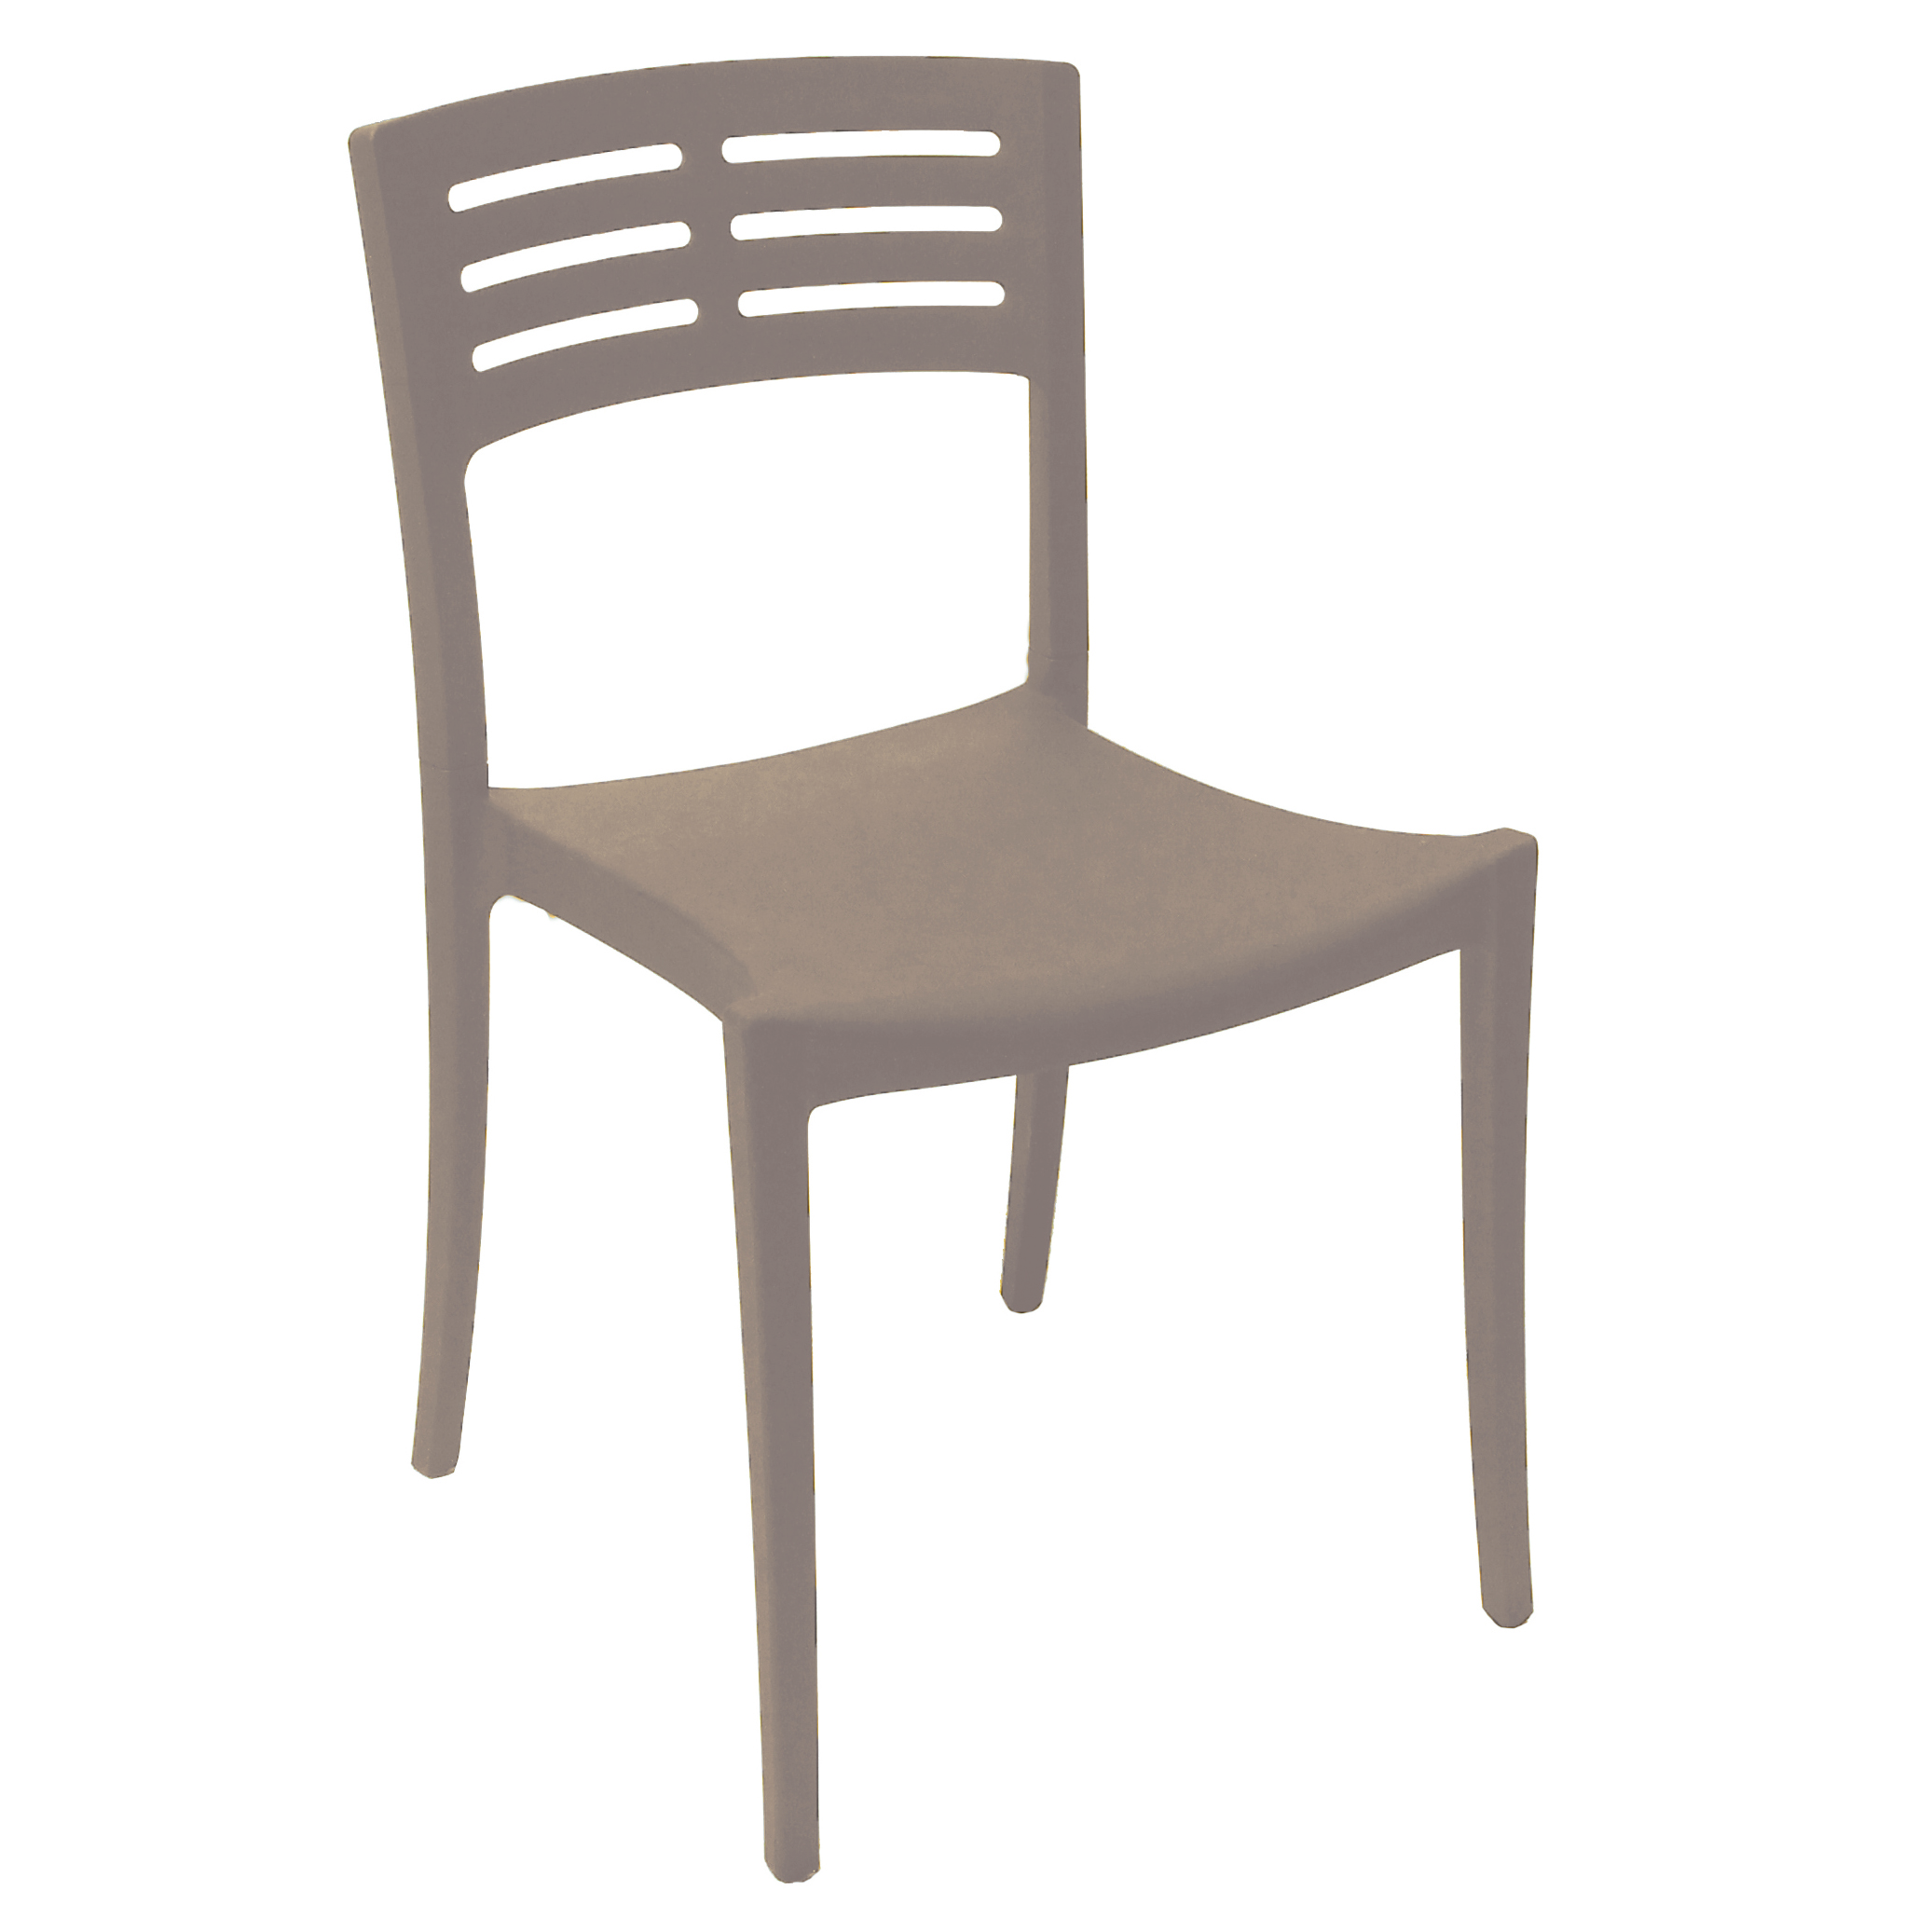 Grosfillex US637181 chair, side, stacking, outdoor